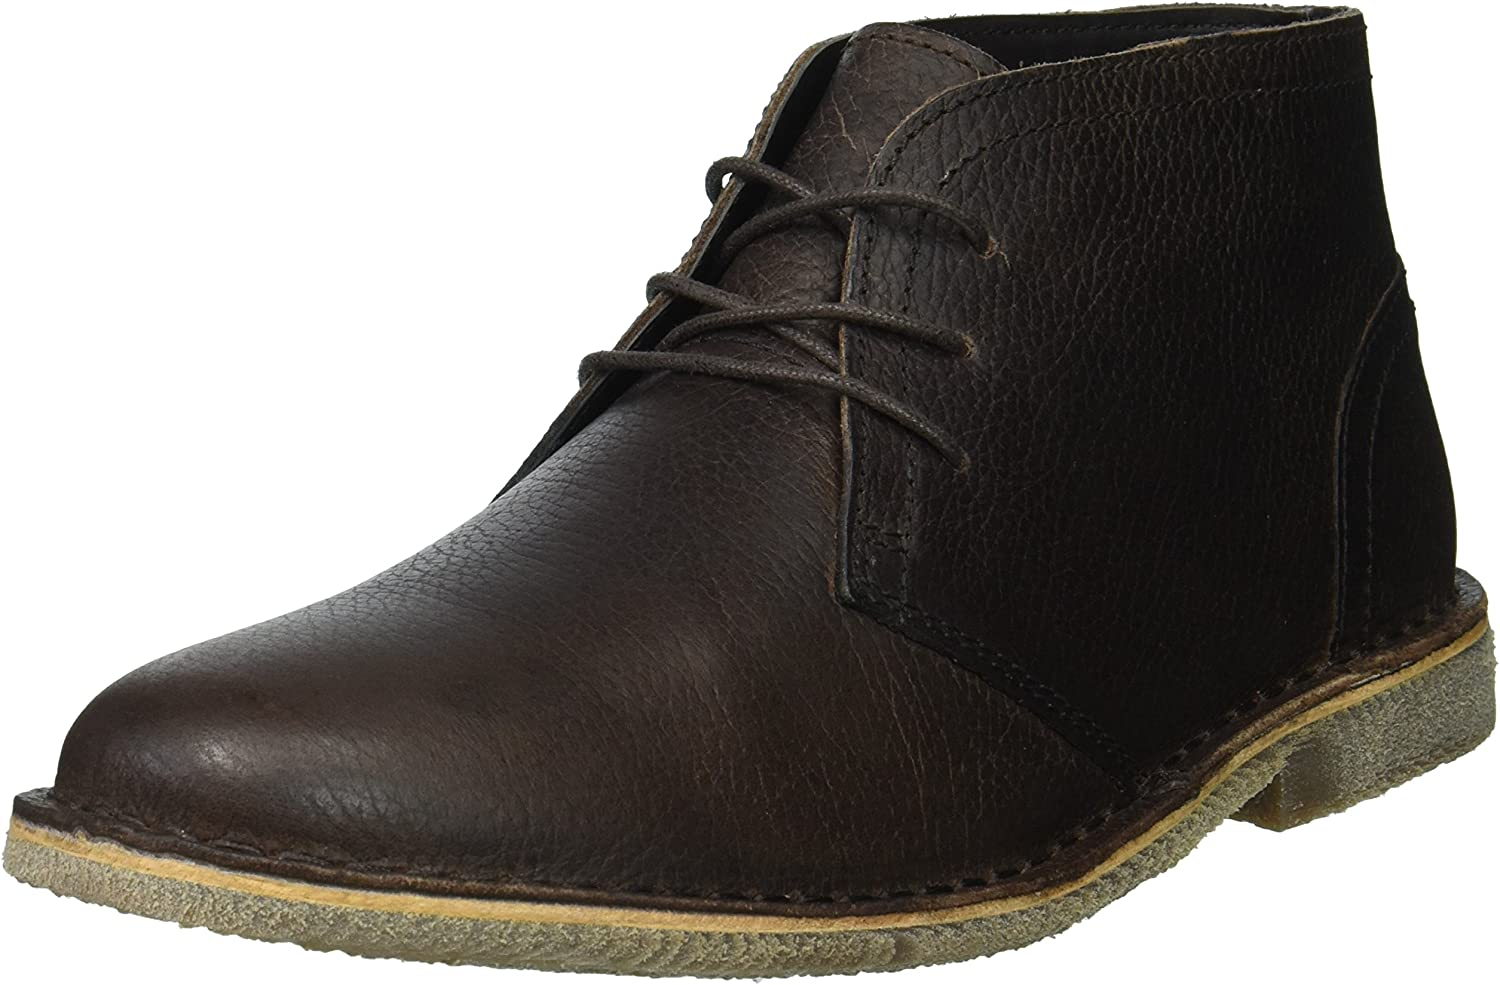 Marc New York Men's Walden Chukka Boot